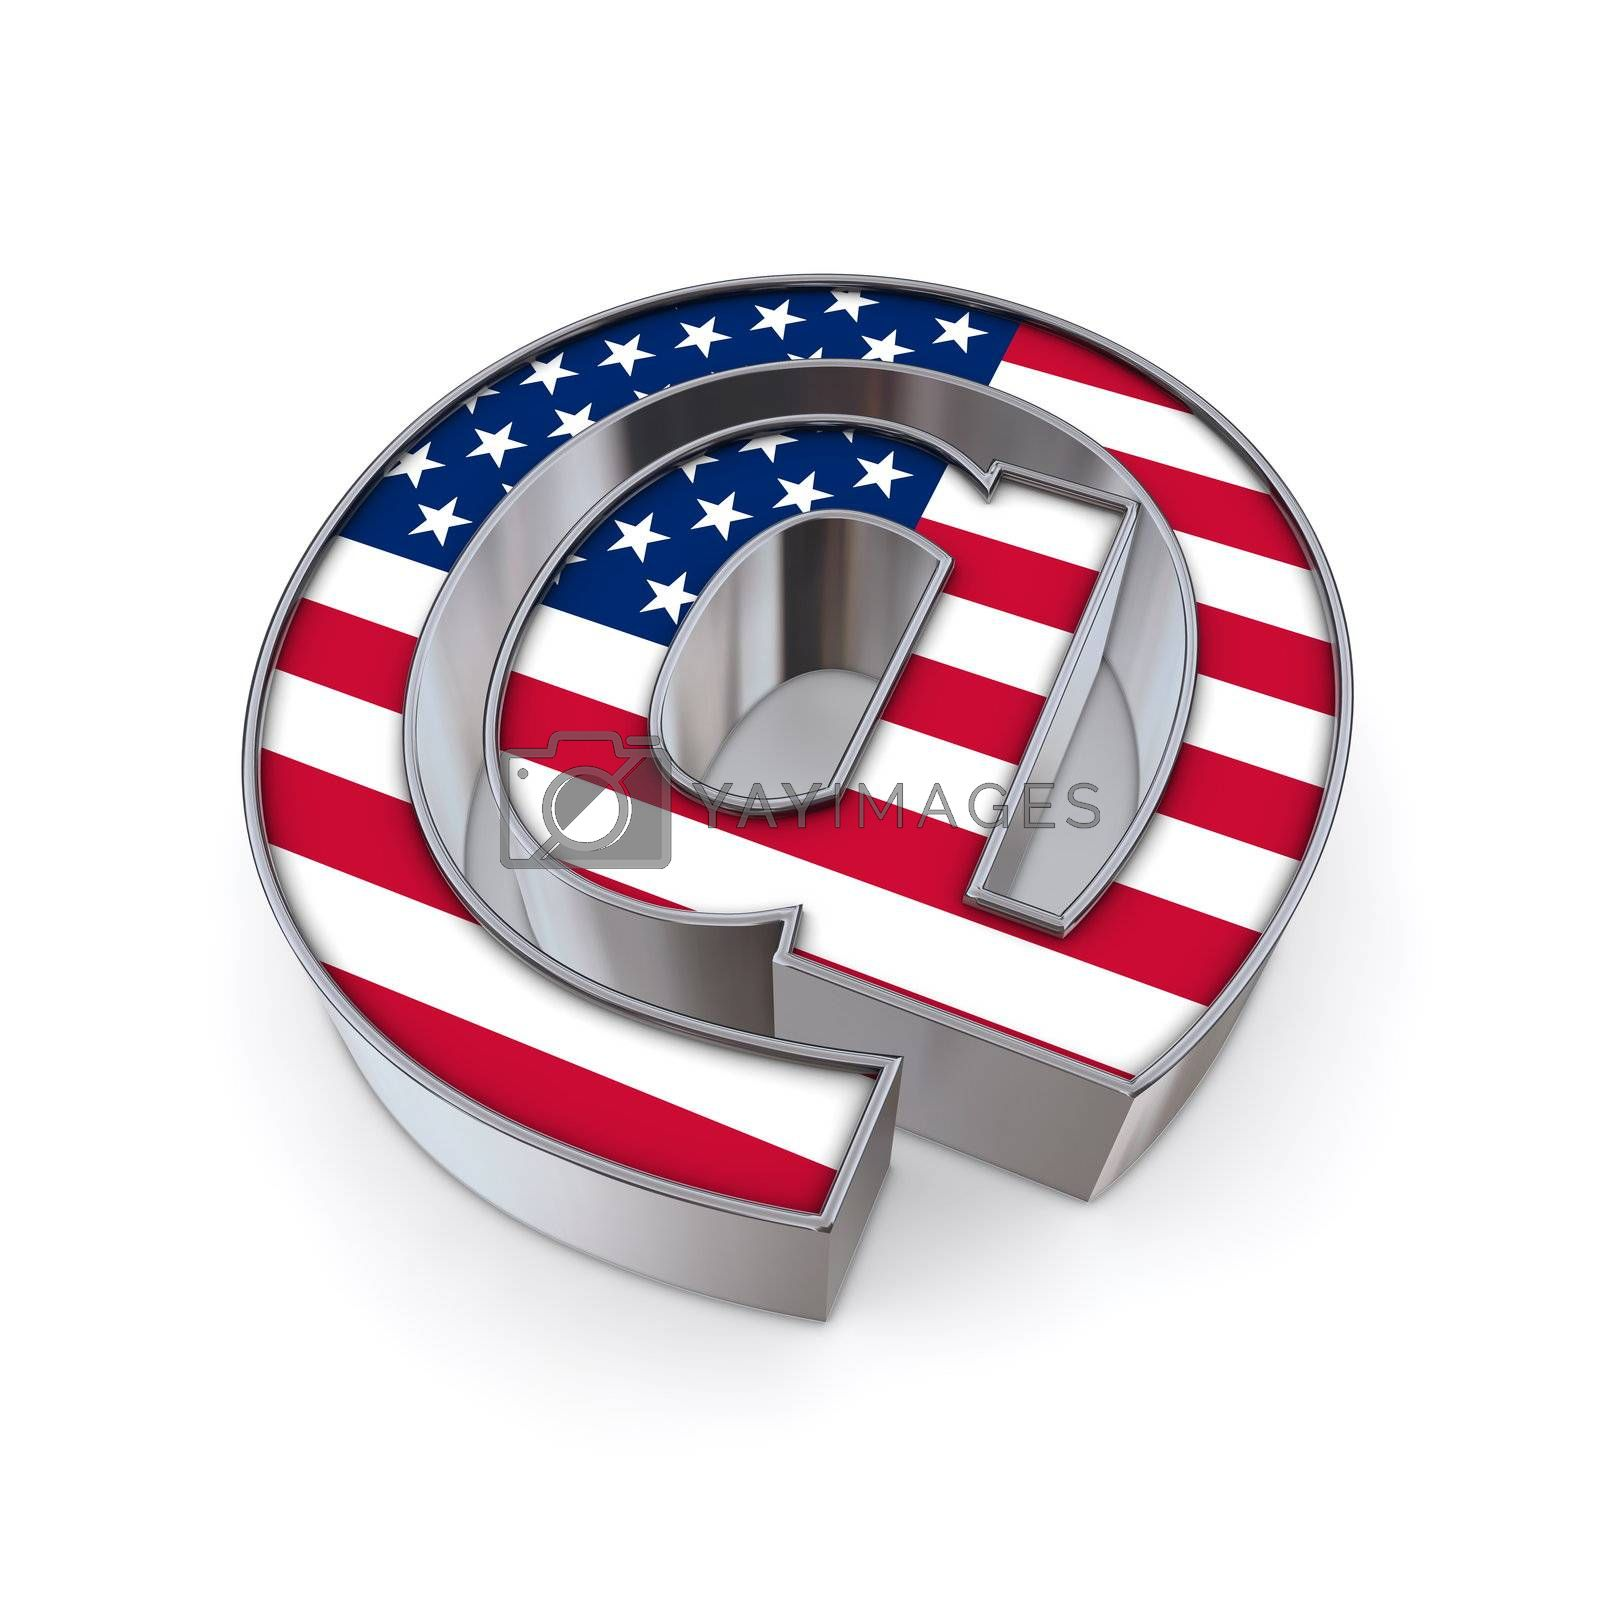 Royalty free image of AT National - United States of America by PixBox